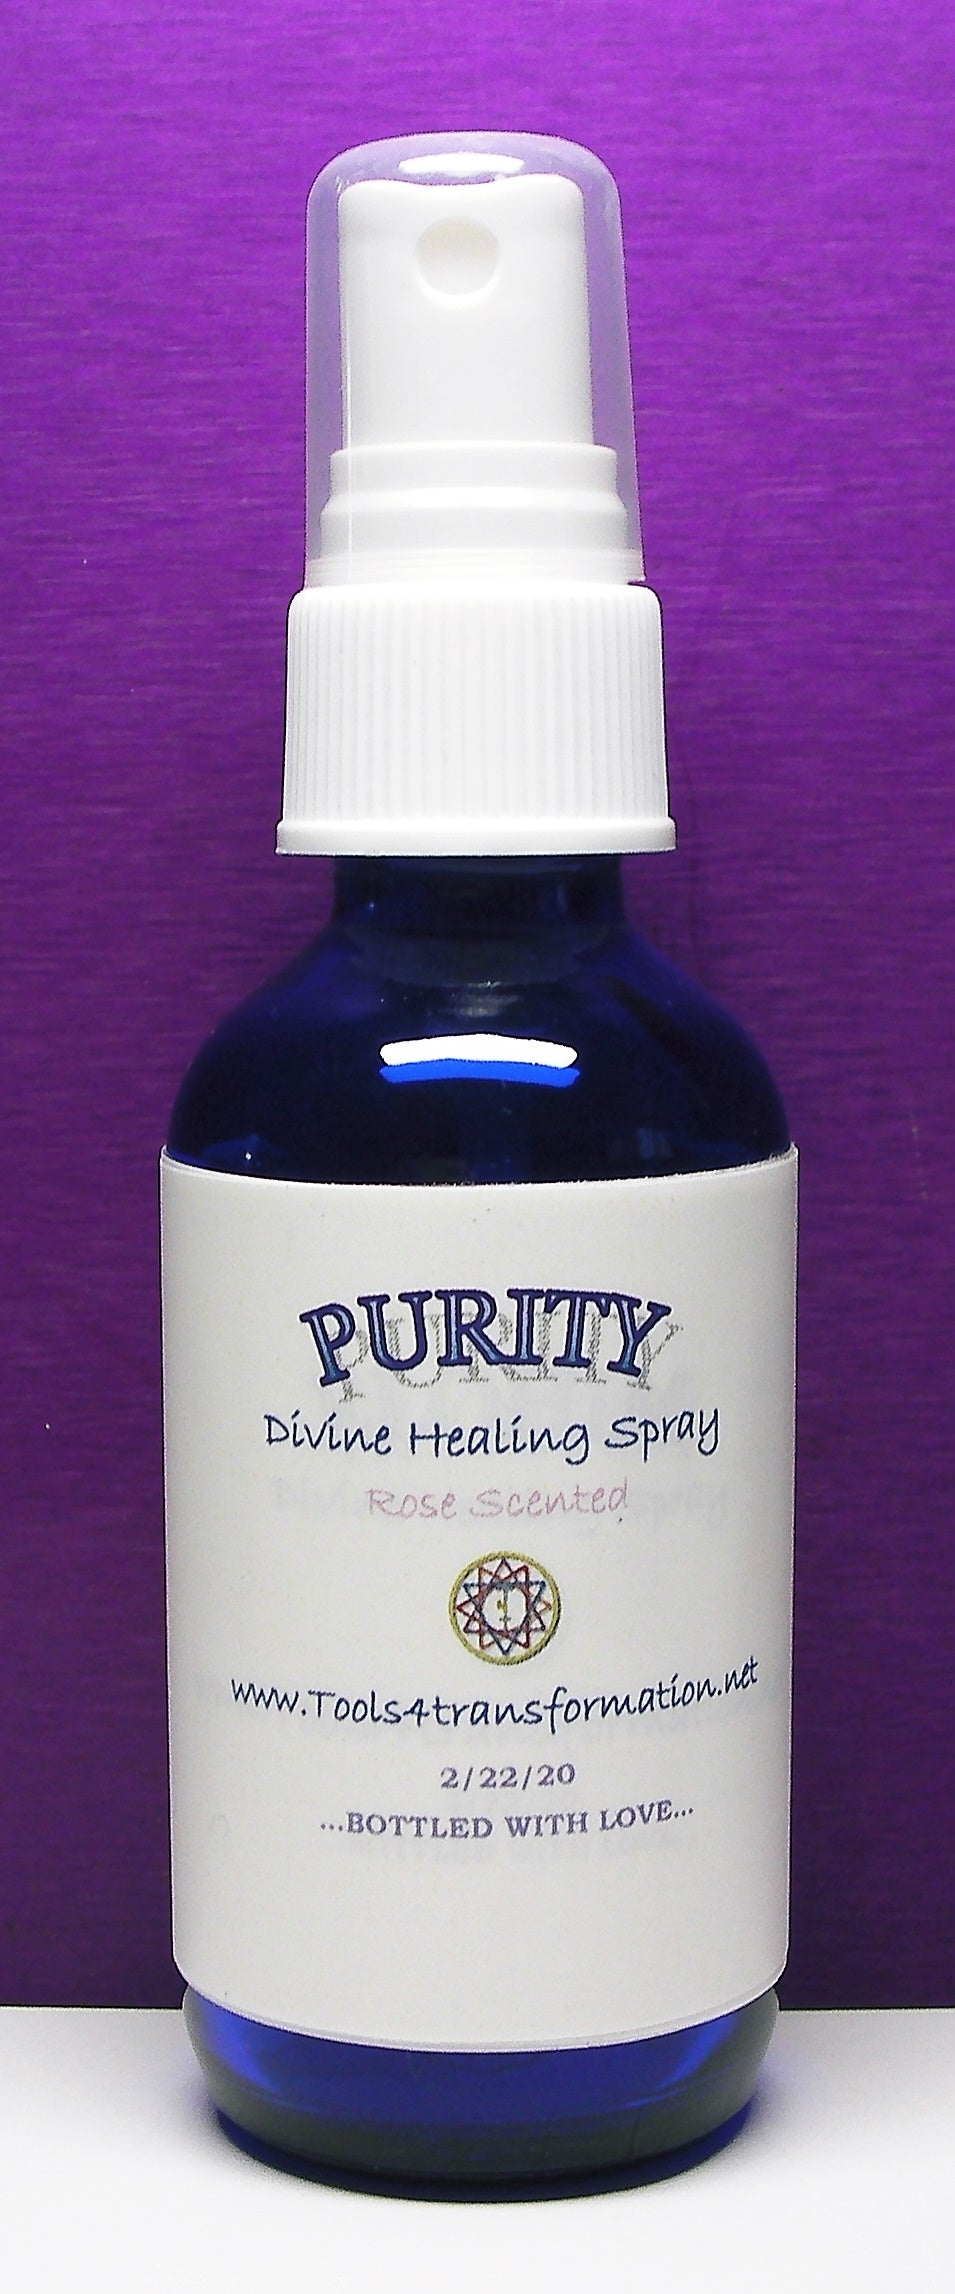 Purity Divine Healing Spray